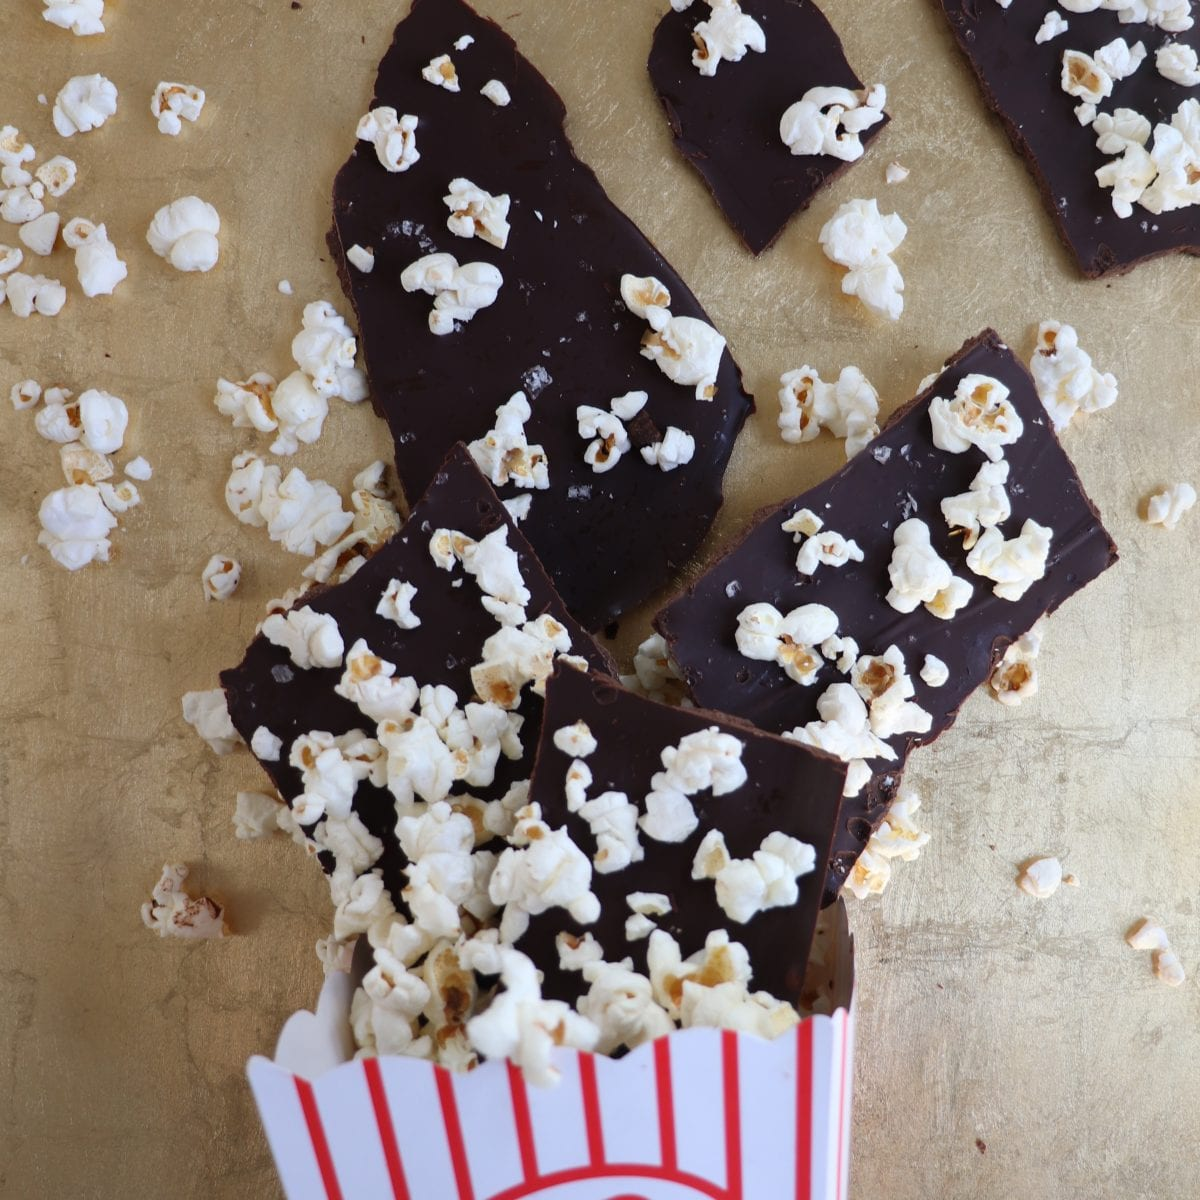 Oscars, Academy Awards, Movie Star, Awards Show, Viewing, Chocolate Bark, Popcorn, Easy Recipe, Party Snack